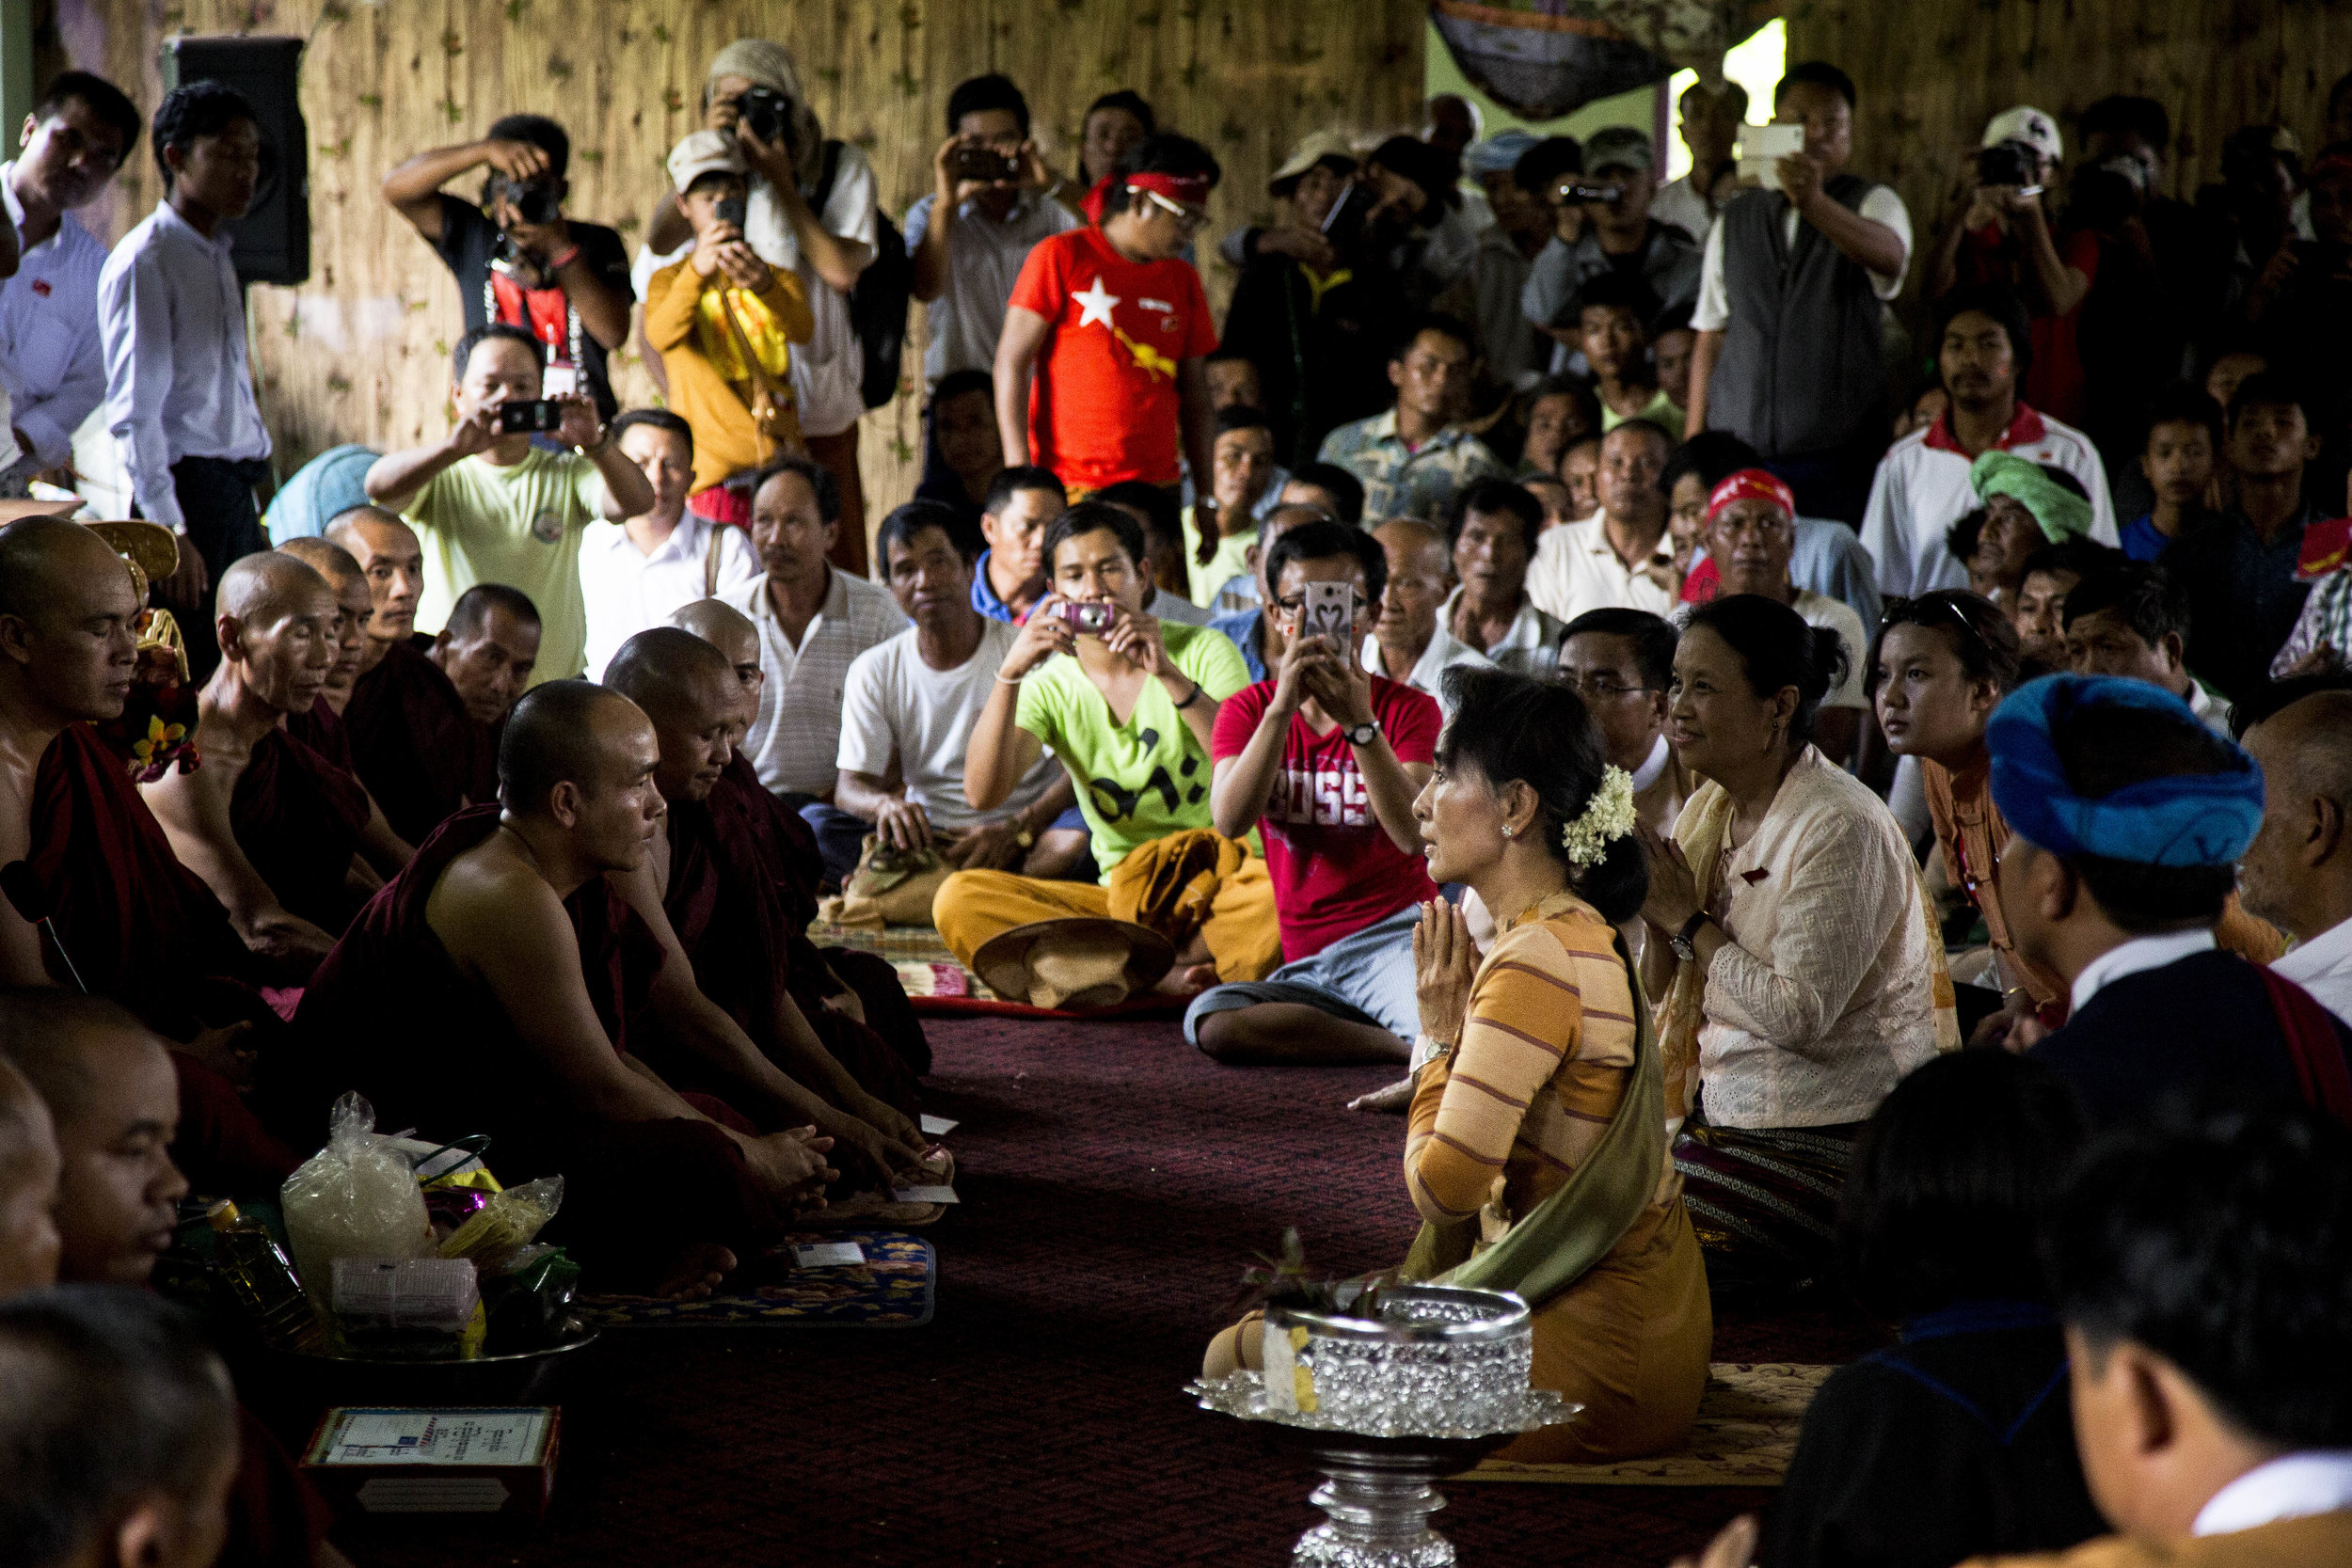 Daw Aung Shan Suu Kyi visiting Hsi-Hseng in Shan State on September 5, 2015Photo by Ann Wang